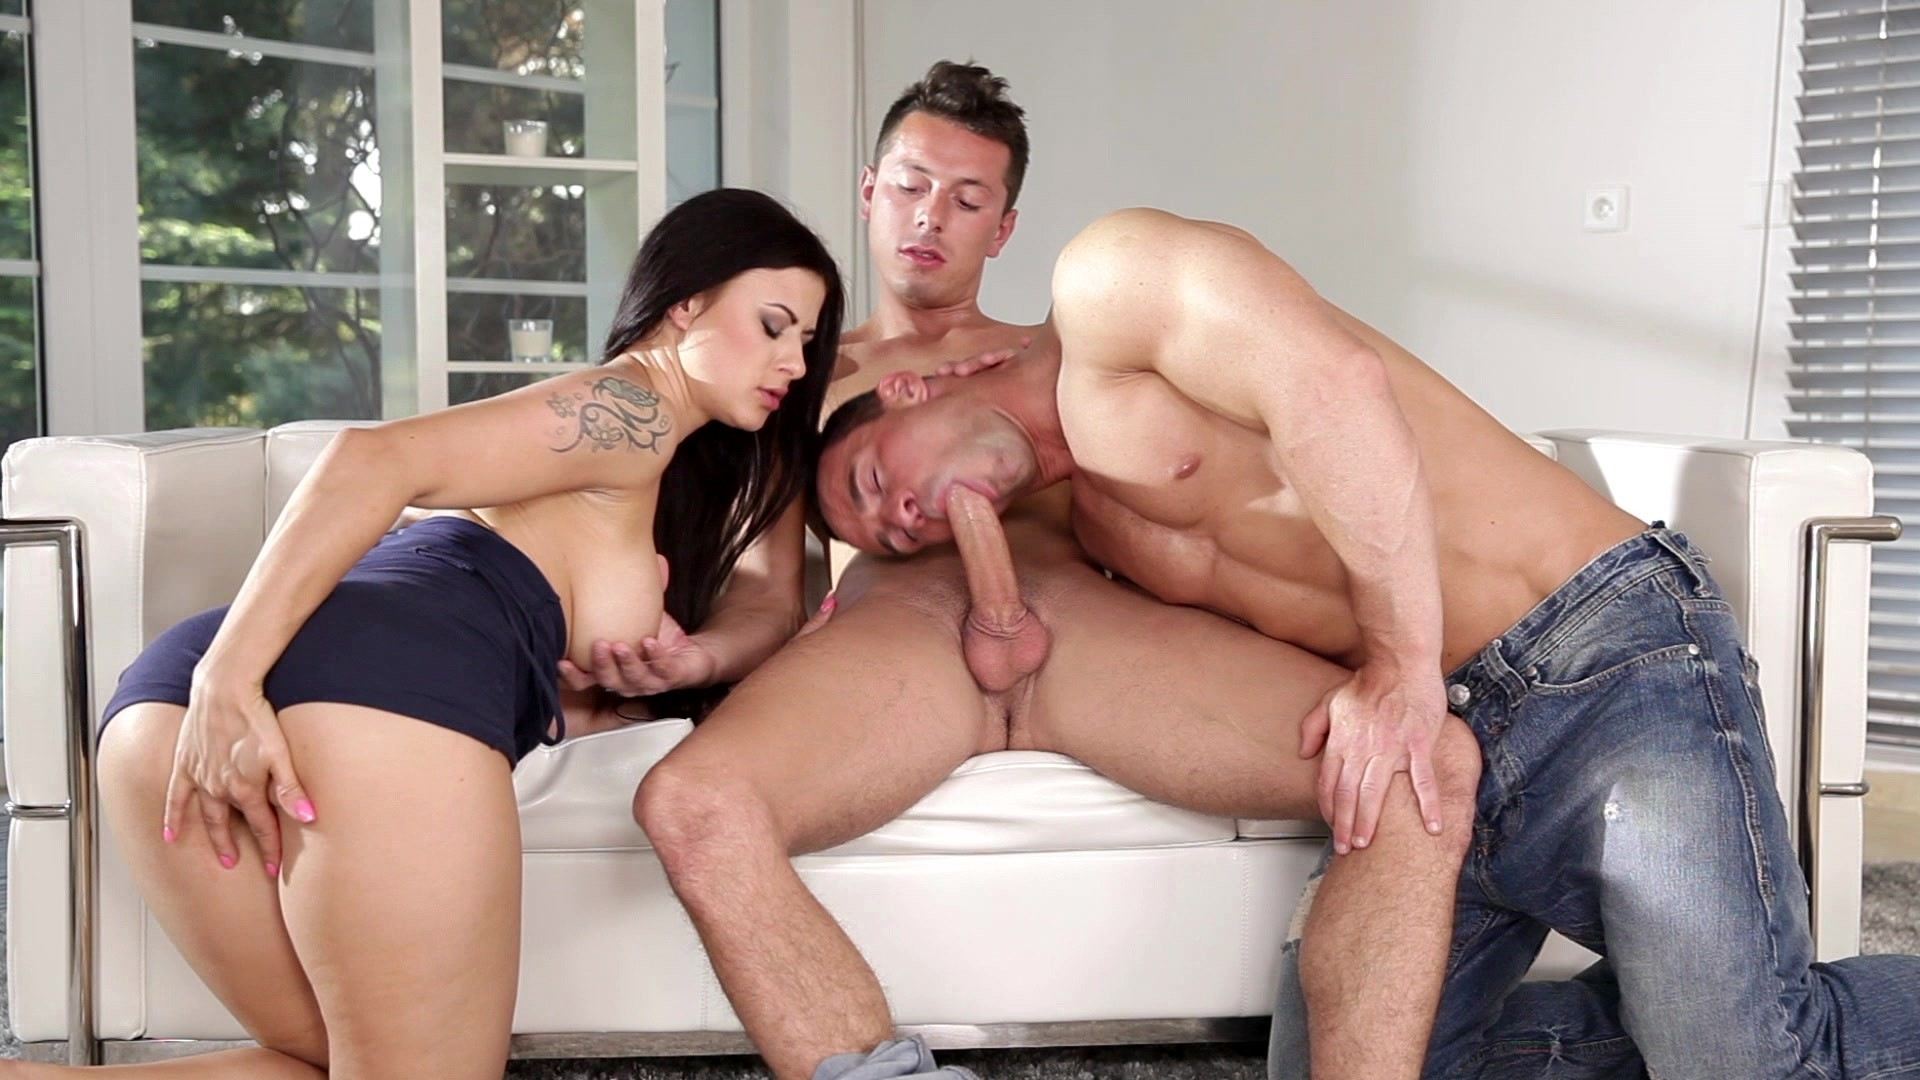 Biempire 5 studs and 2 chicks buttfucking biorgy